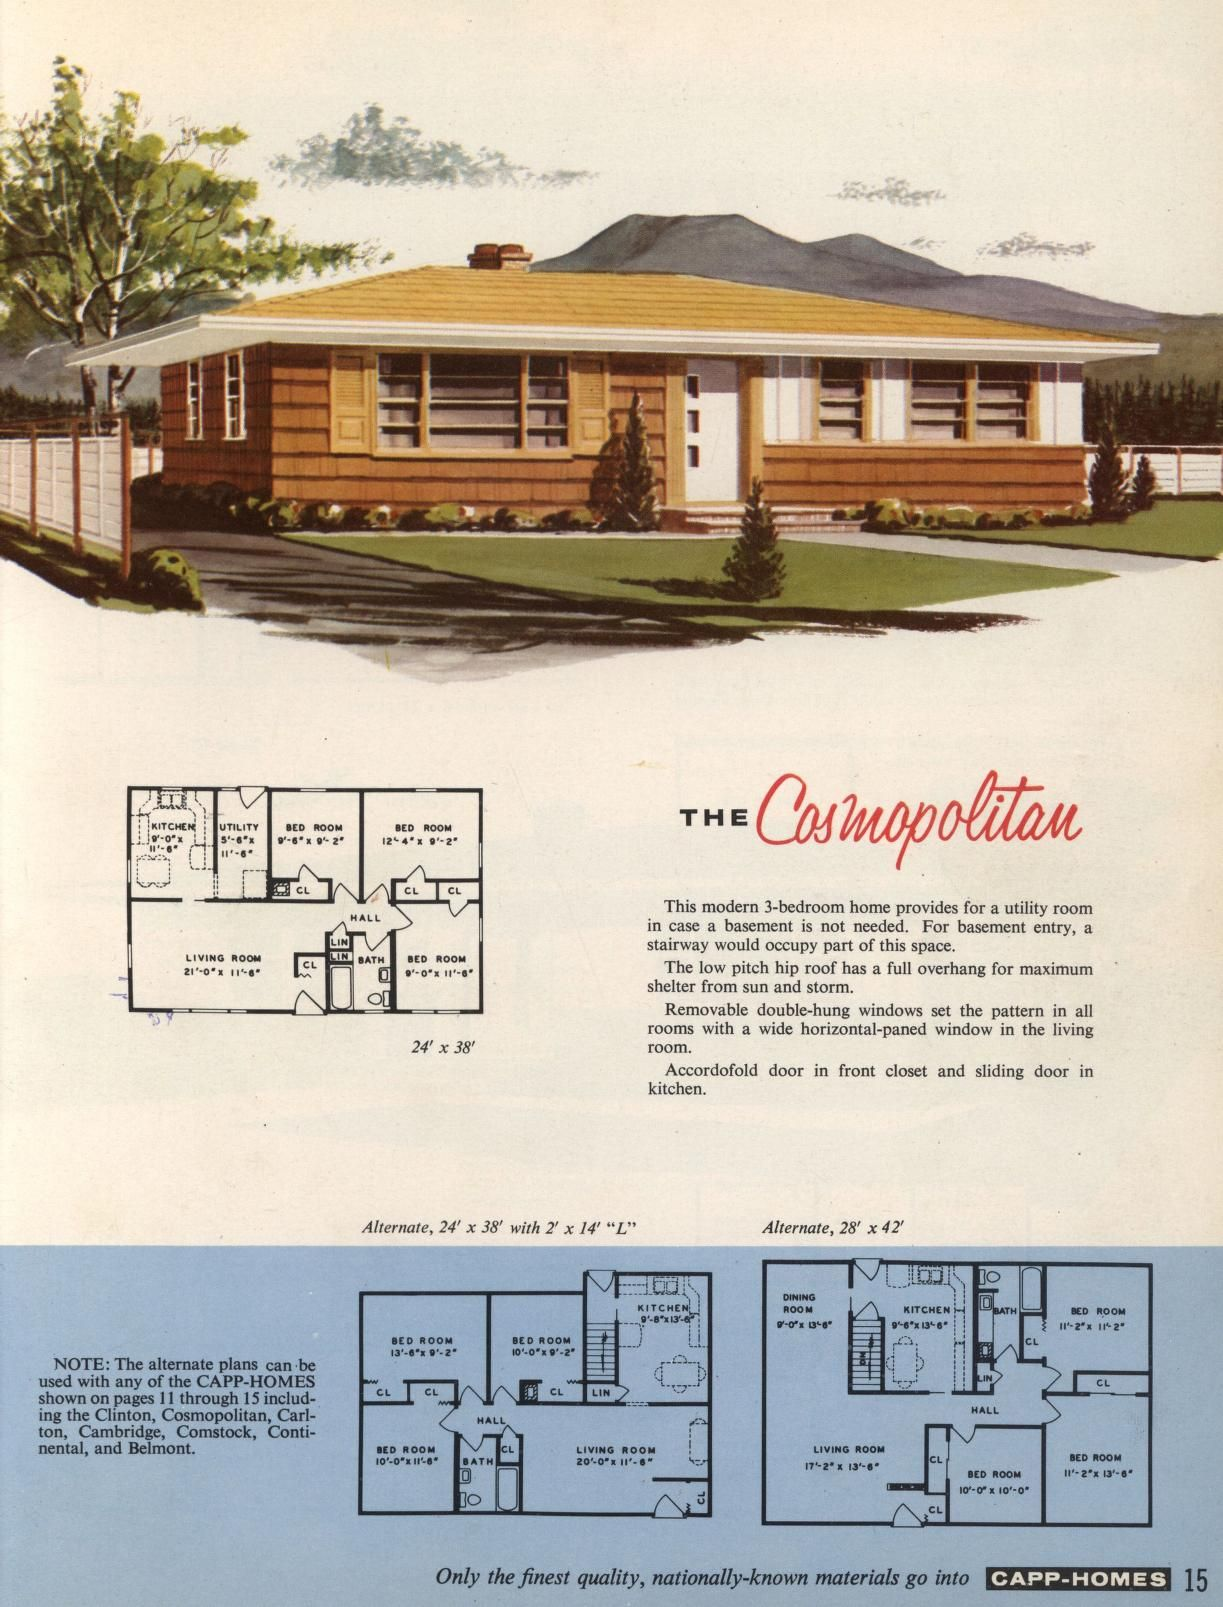 Capp Homes Custom Built To Your Specifications M Capp Manufacturing Co Free Download Borrow And Streaming Internet Archive Vintage House Plans House Plans Mid Century Modern House Plans